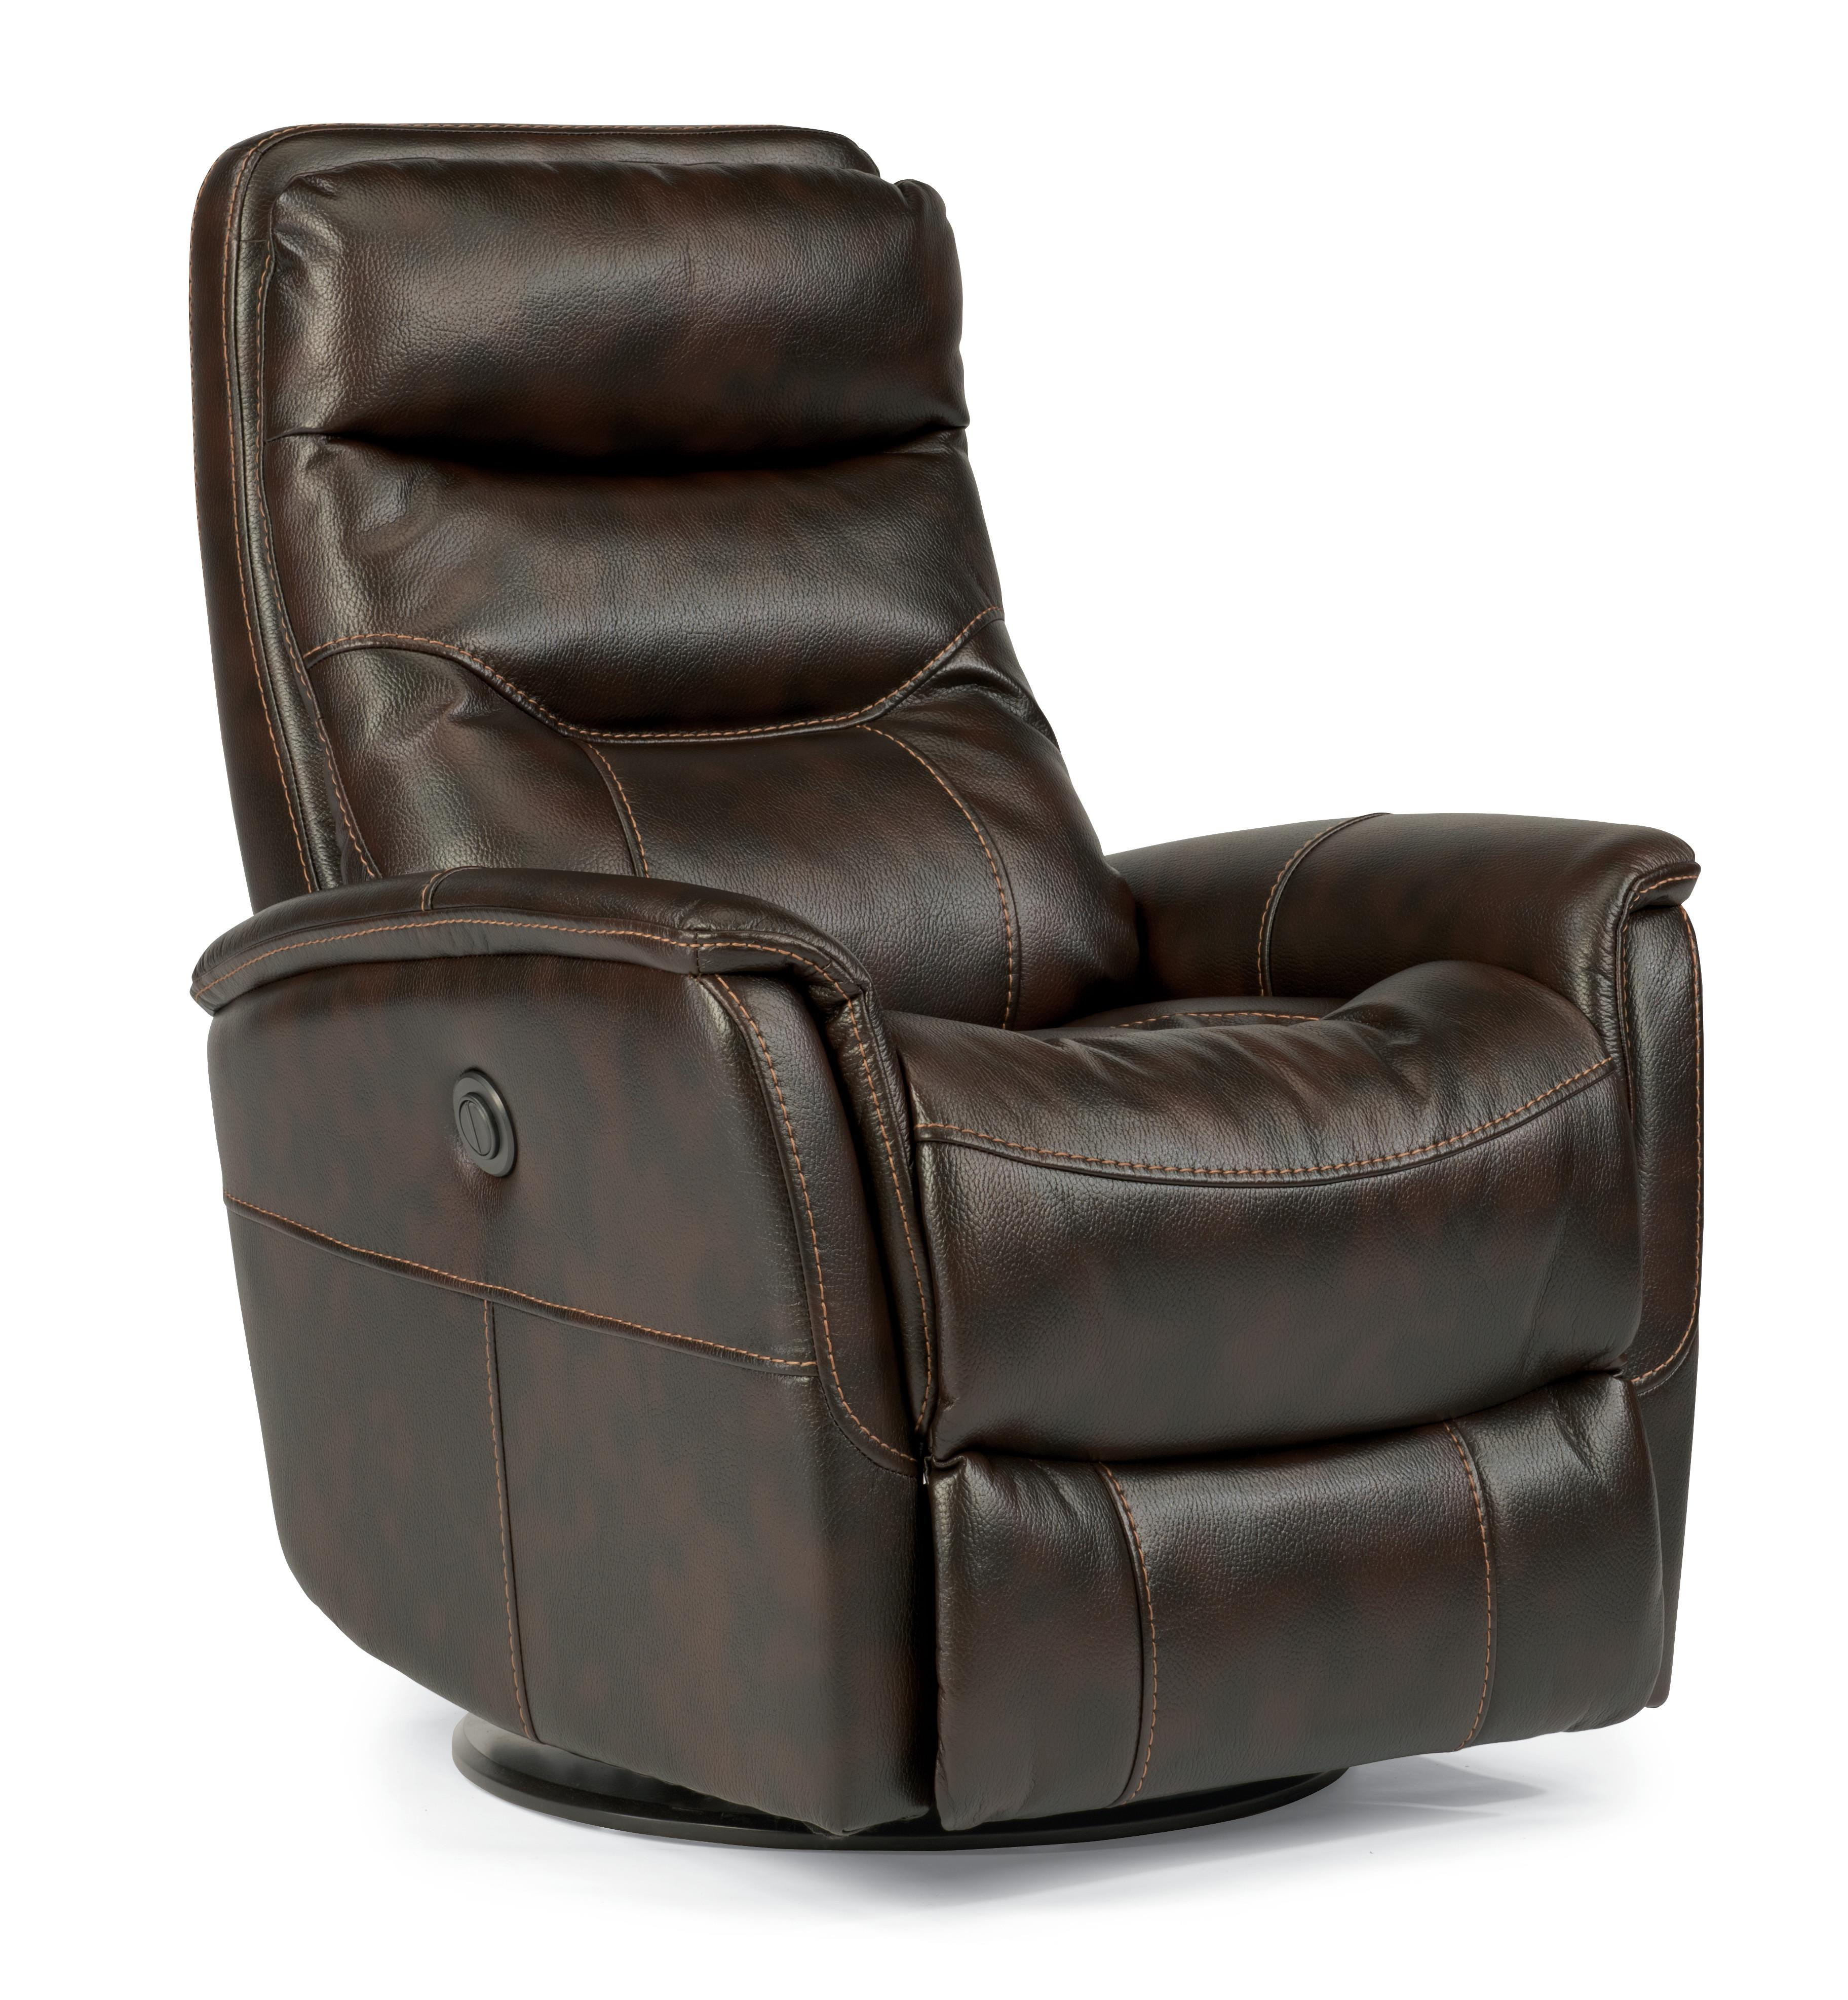 Flexsteel Latitudes Go Anywhere Recliners Alden King Power Swivel Glider Recline - Item Number: 1393-53PK-580-70